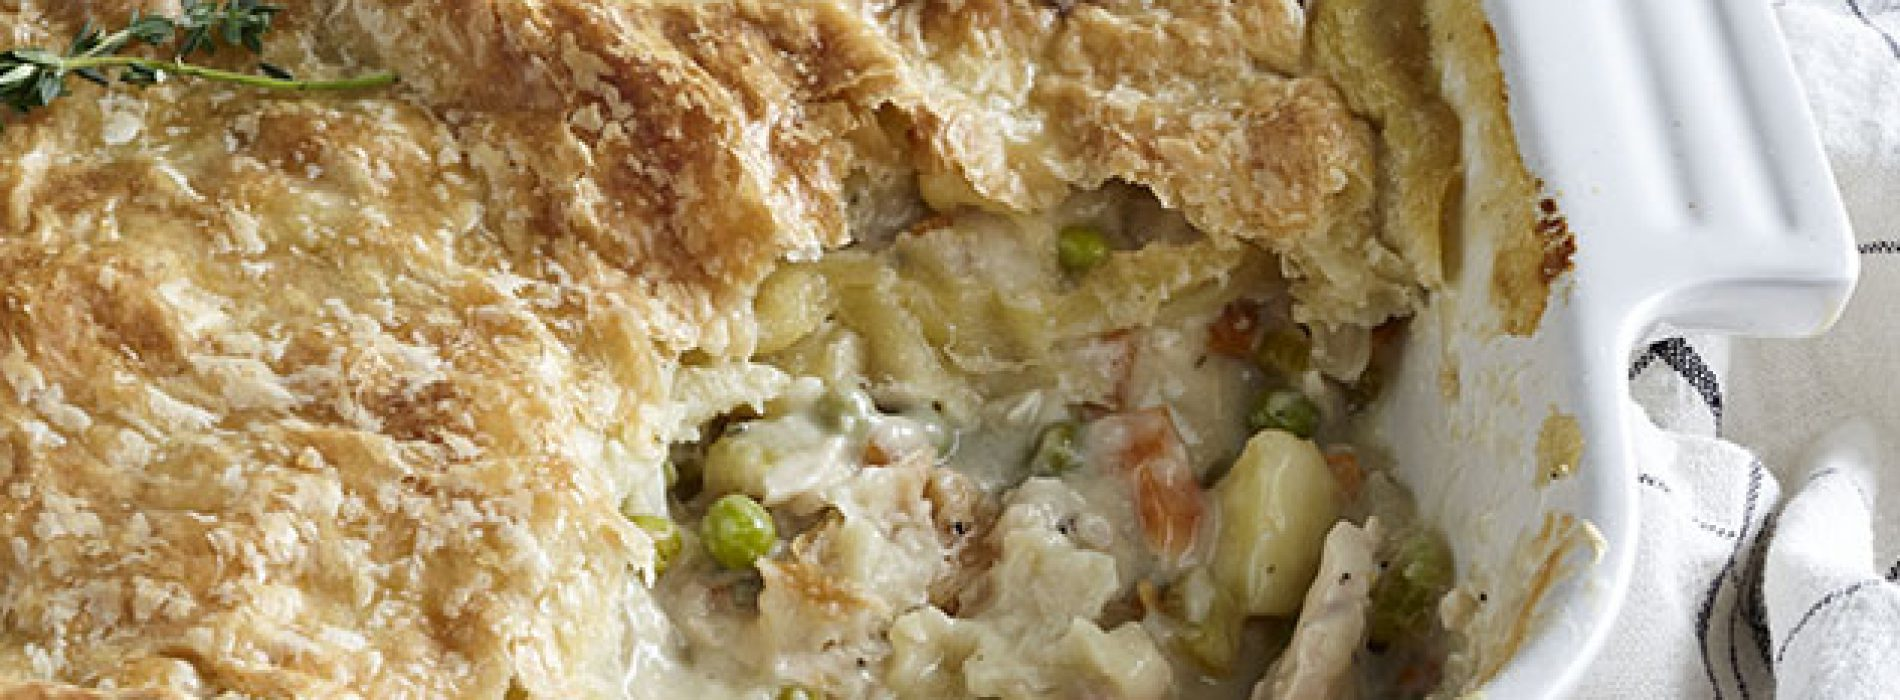 Scarlett's Turkey Pot Pie